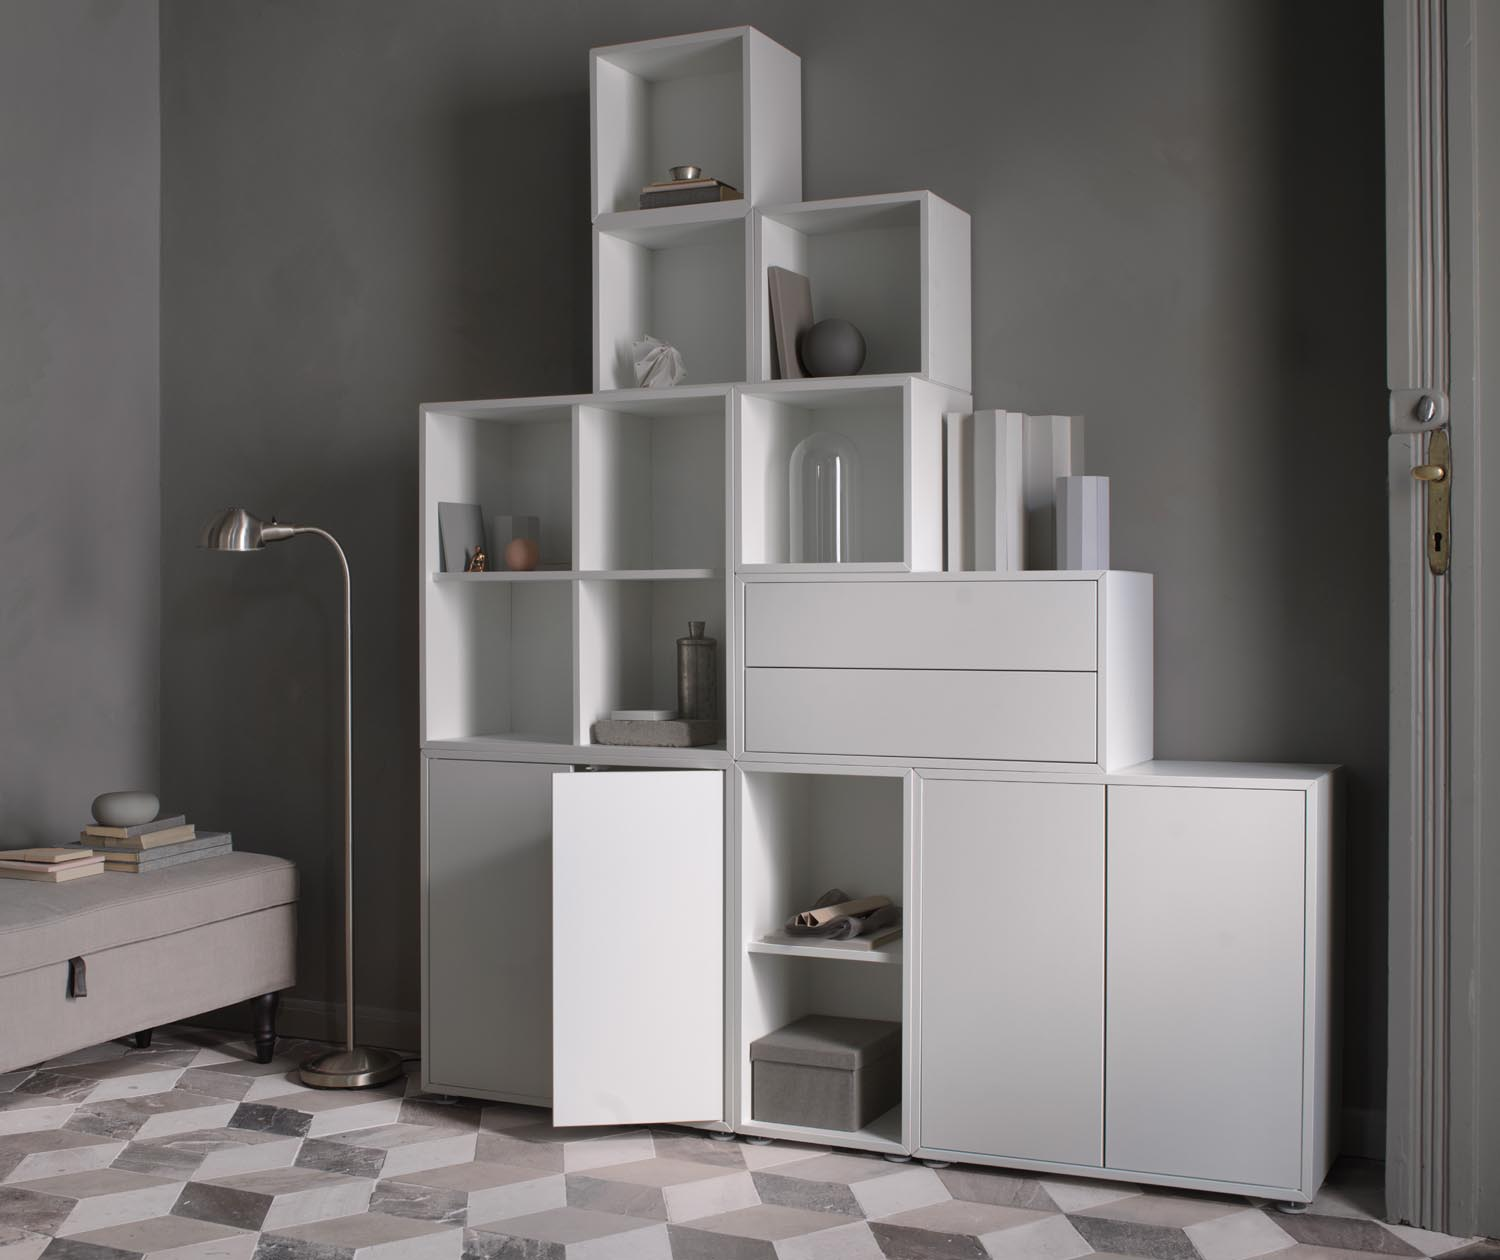 ikea office supplies. This Spring, IKEA Is Offering All Sorts Of Cool Modular Shelving And Storage Solutions. The EKET Series Feels Like Tetris For Your Office Supplies. Ikea Supplies G